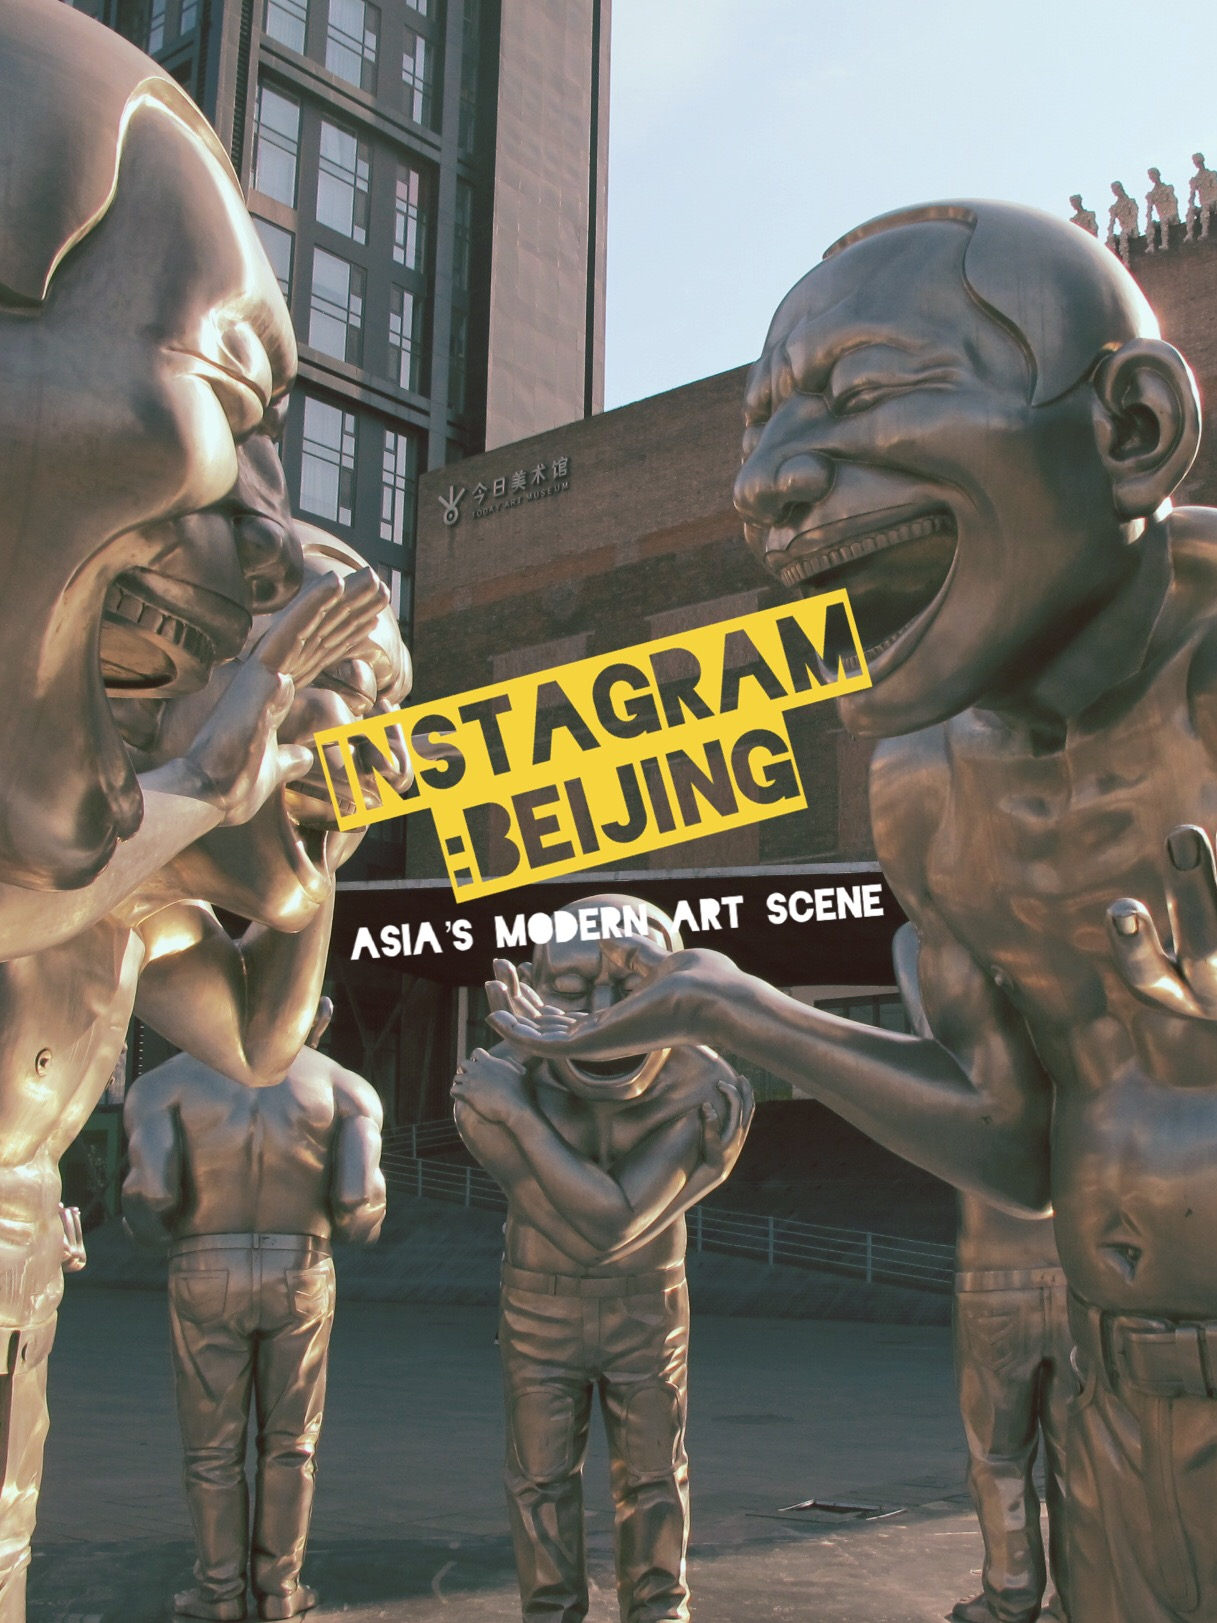 The Awesome Modern Art Places and Instagram Spots in Beijing